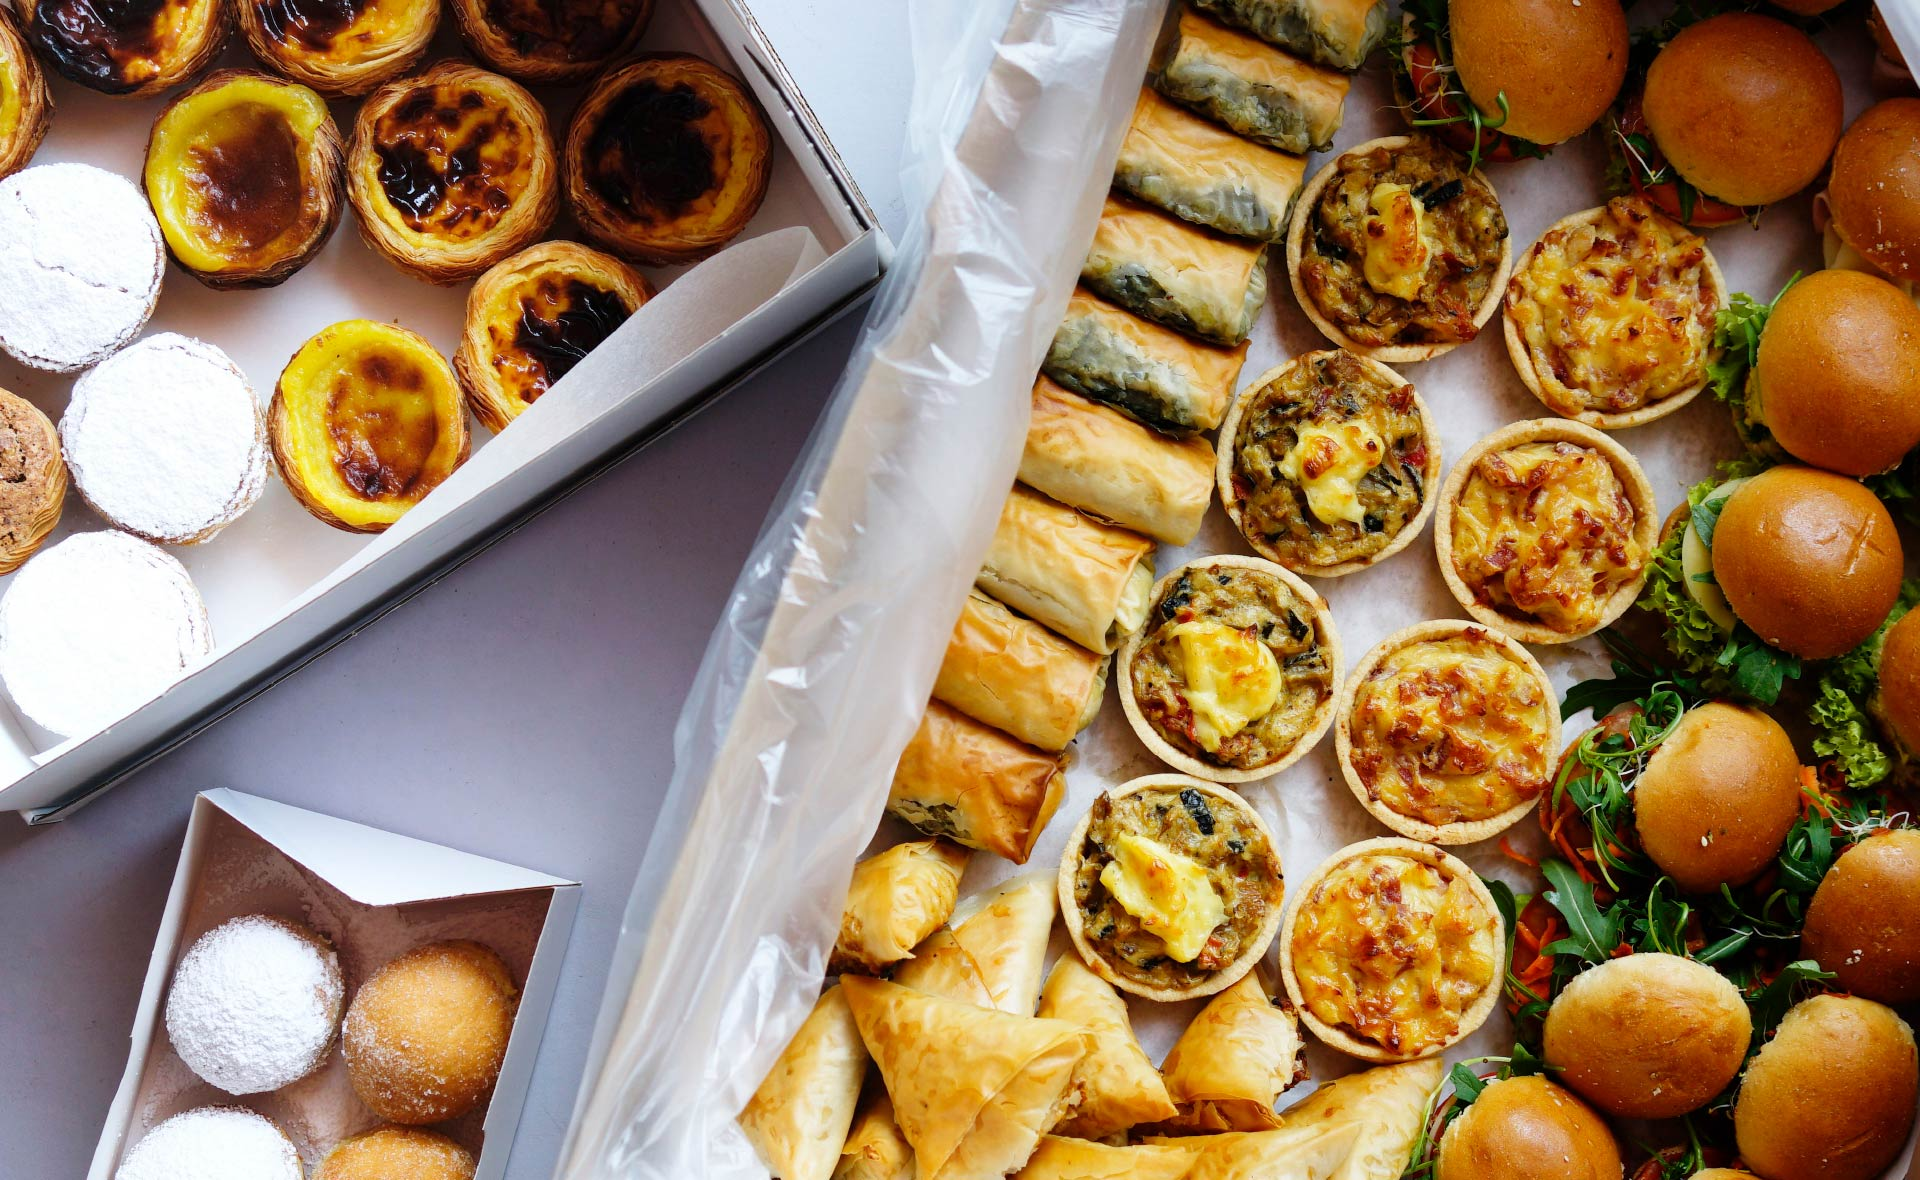 Bekarei Catering - Portuguese-Greek Fingerfood Catering